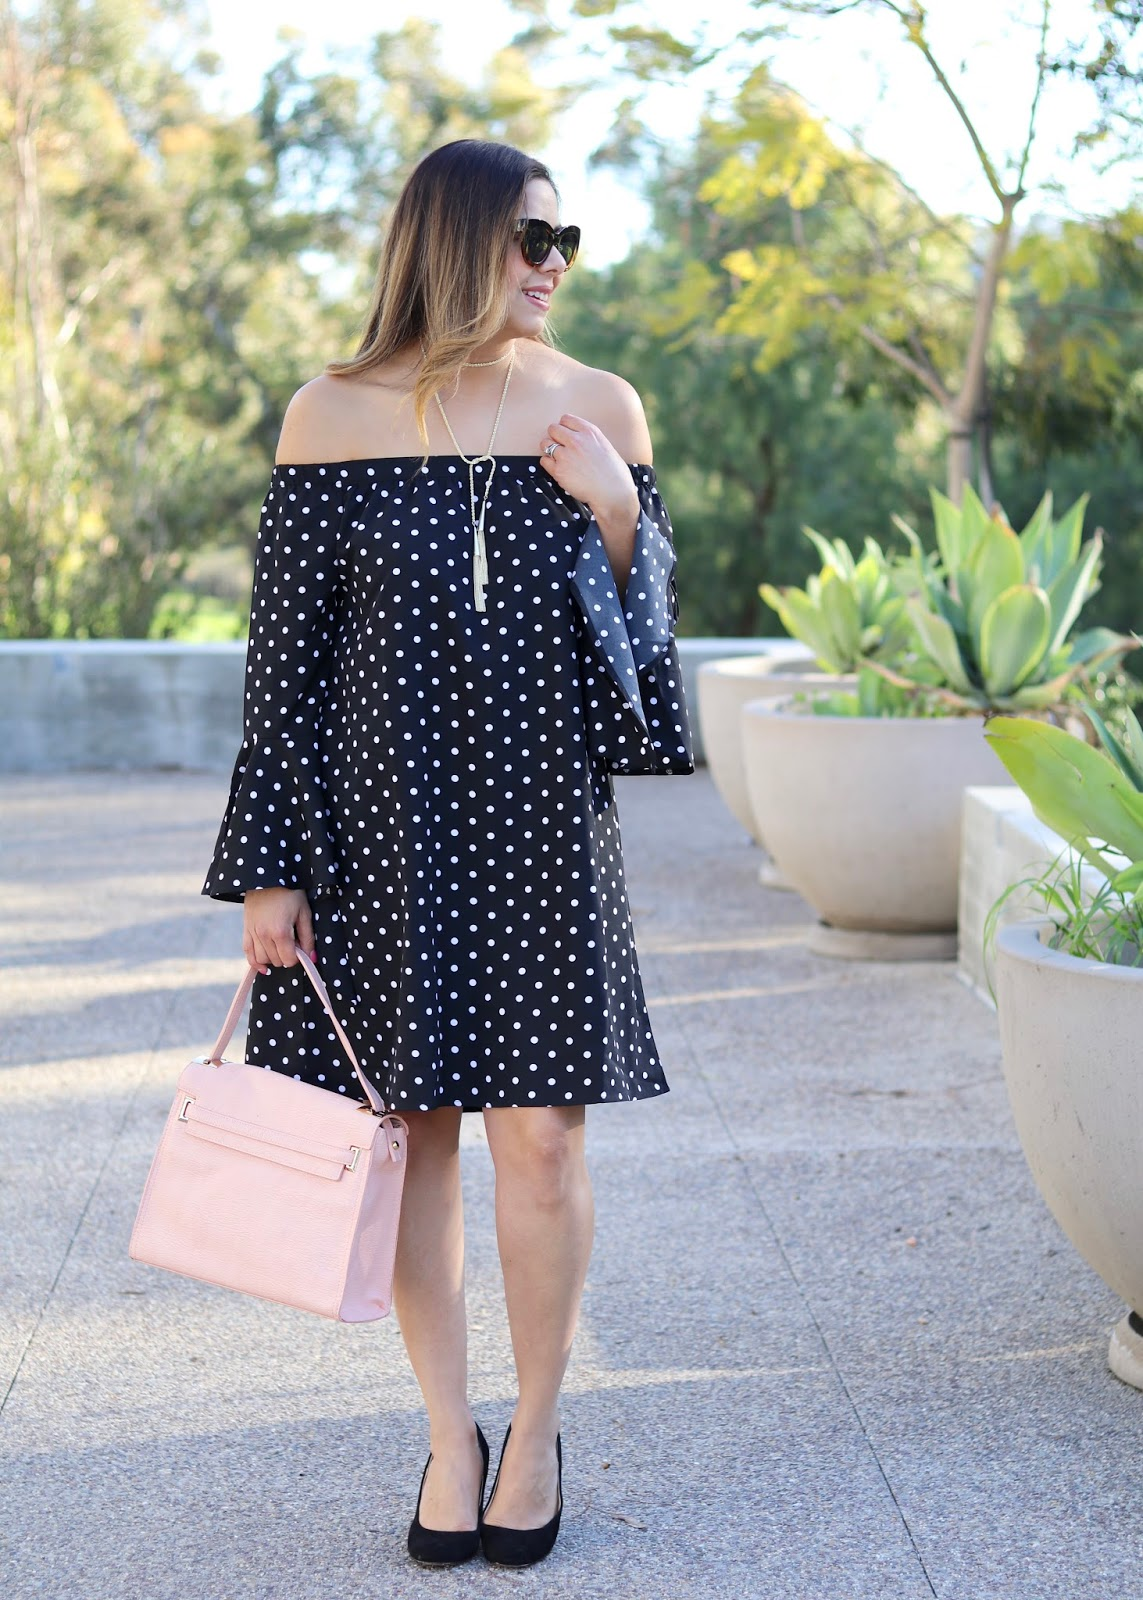 How to wear off the shoulder dress, how to wear a blush purse, how to style a polka dot dress